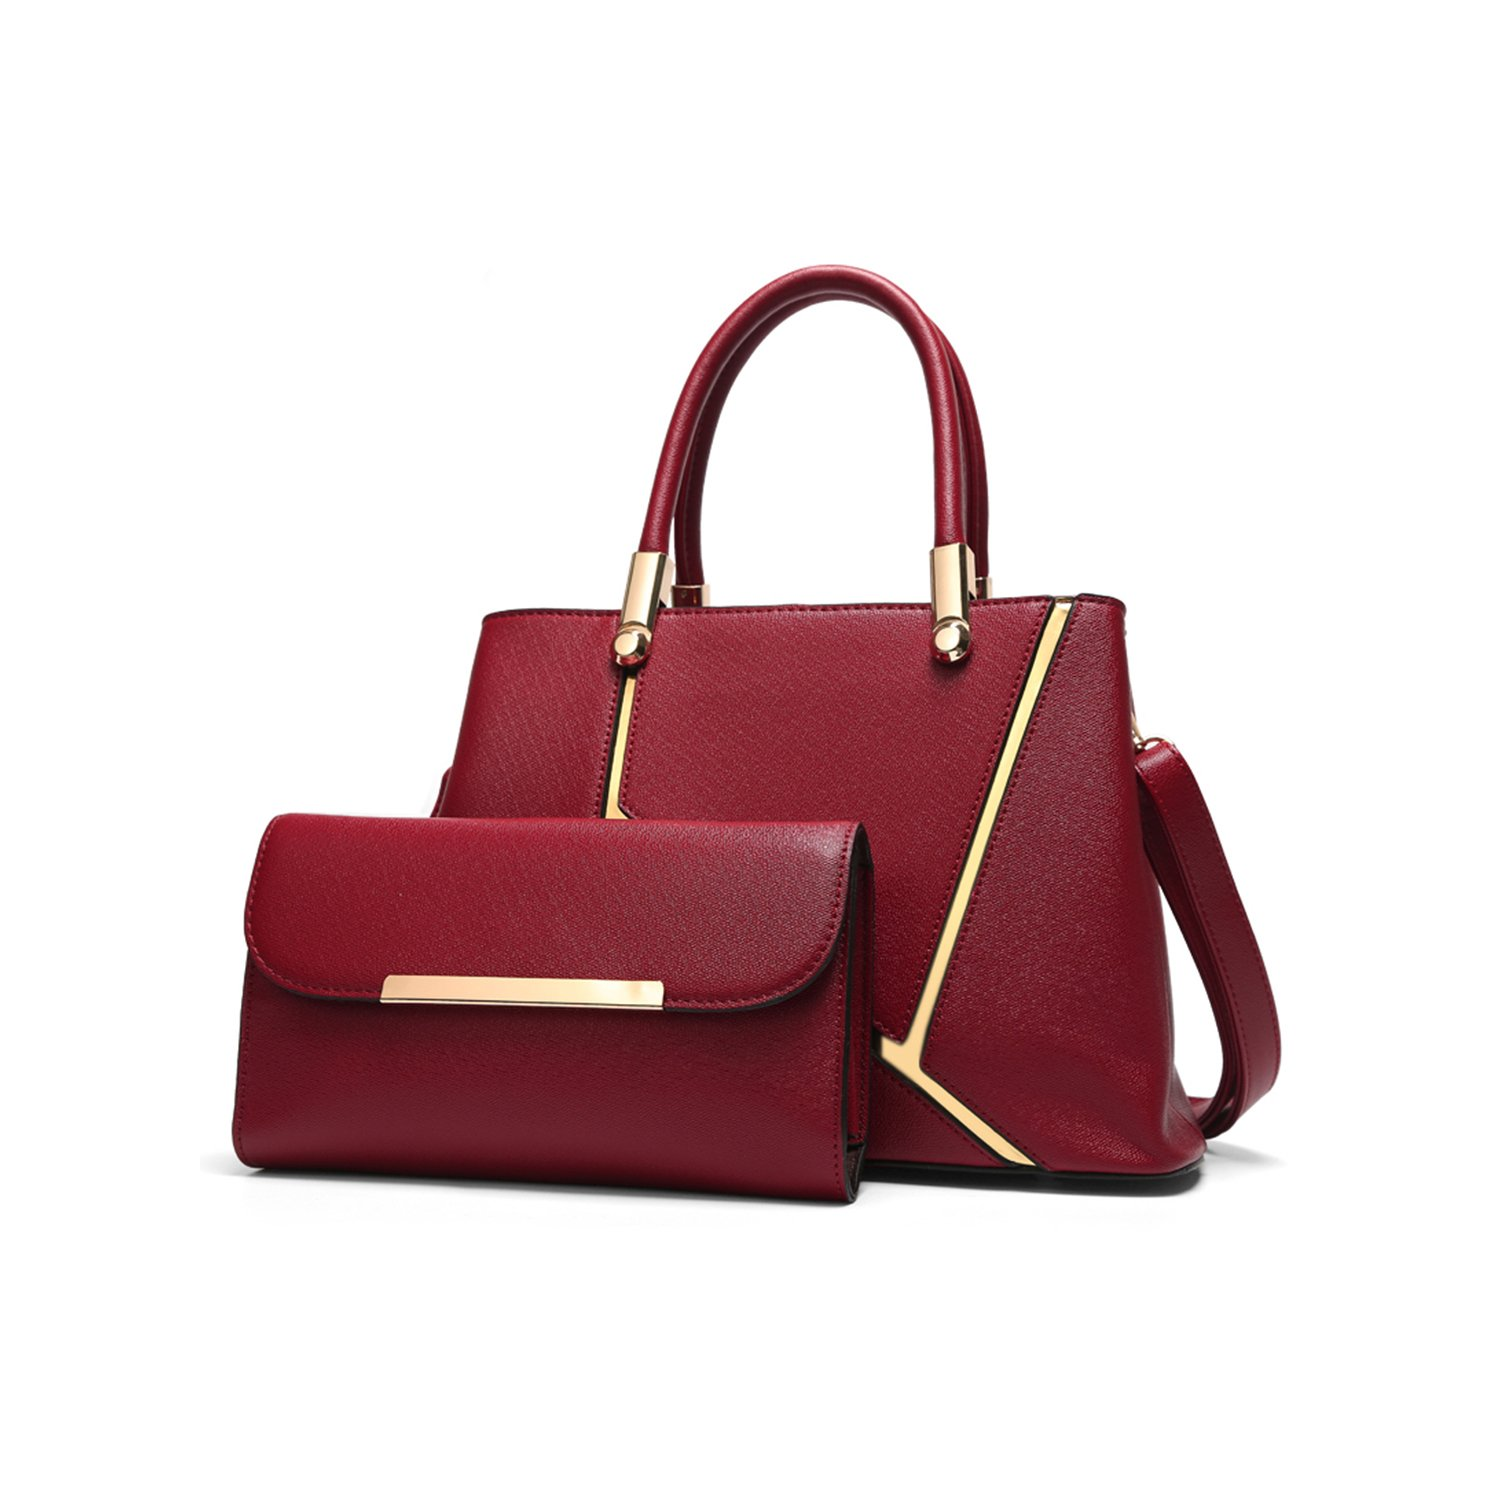 Womens top handle handbags purses sets clearance sale for your appointment